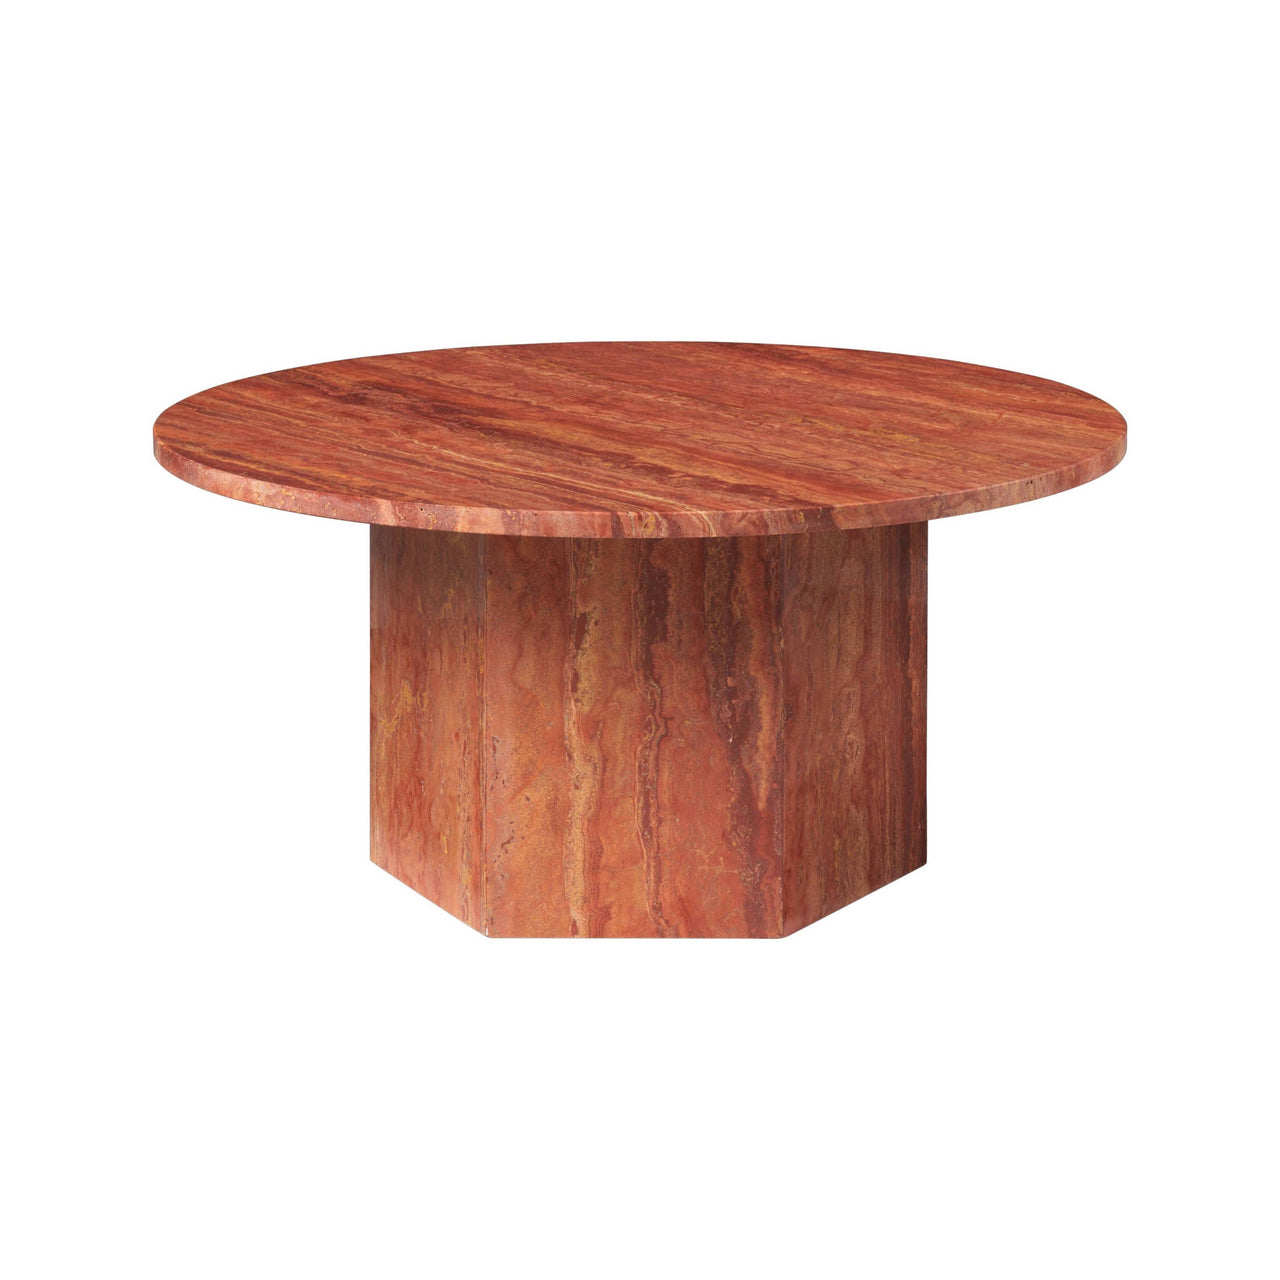 Epic Coffee Table: Round + Medium + Red